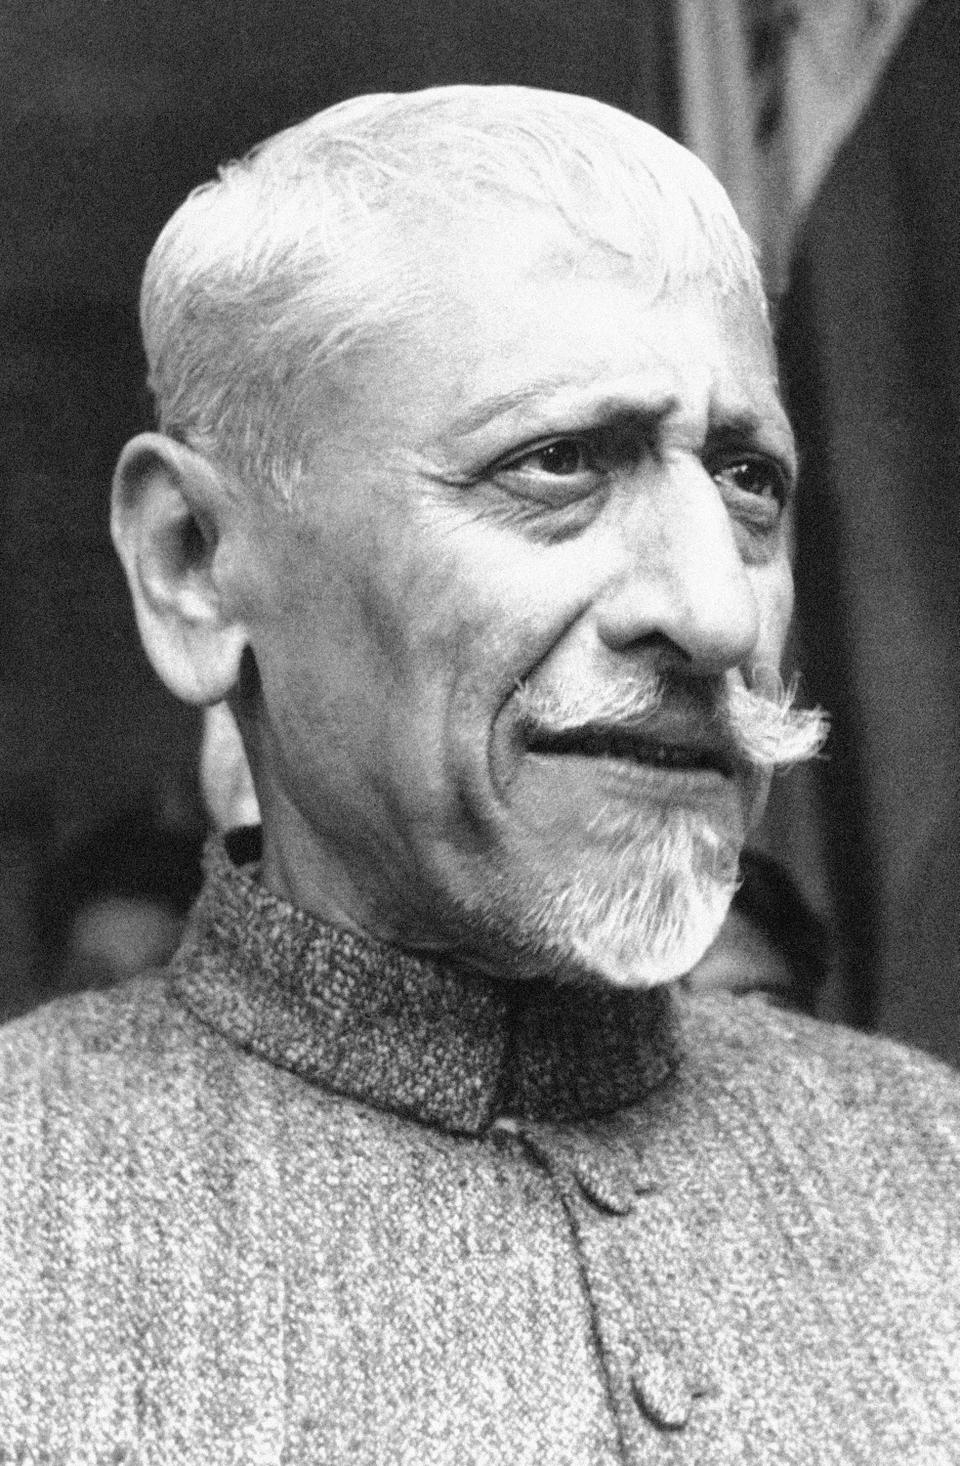 Maulana Abul Kalam Azad proposed the idea of a shared nation with a genuine consensus between Congress and Muslim League, but his plan failed.